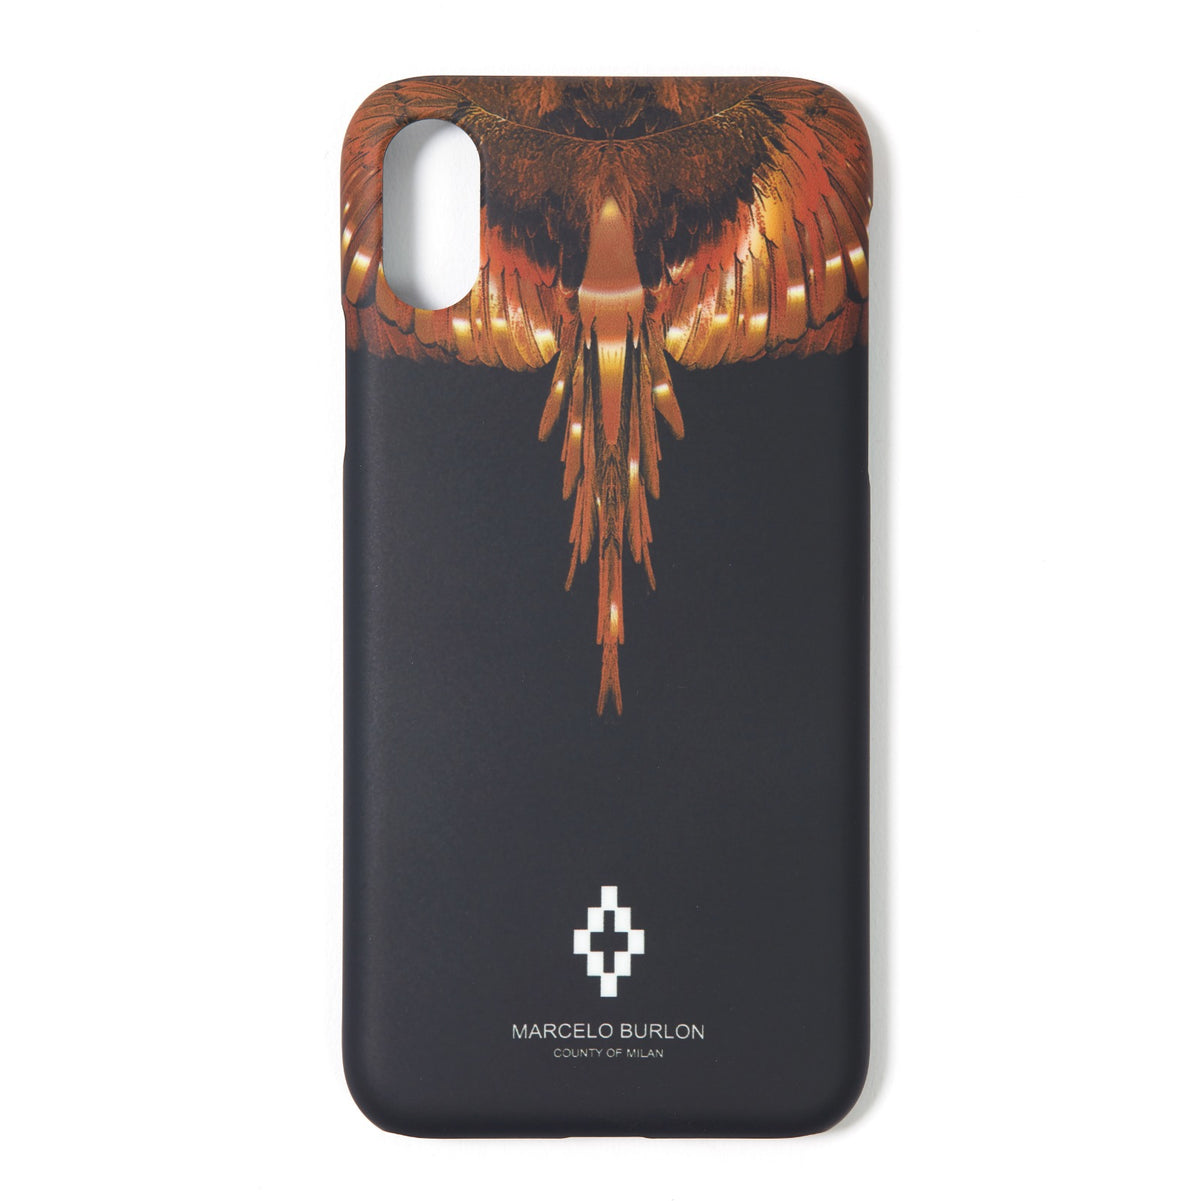 factory authentic 1b176 1a8cd MARCELO BURLON COUNTY OF MILAN Iphone X Wings Case